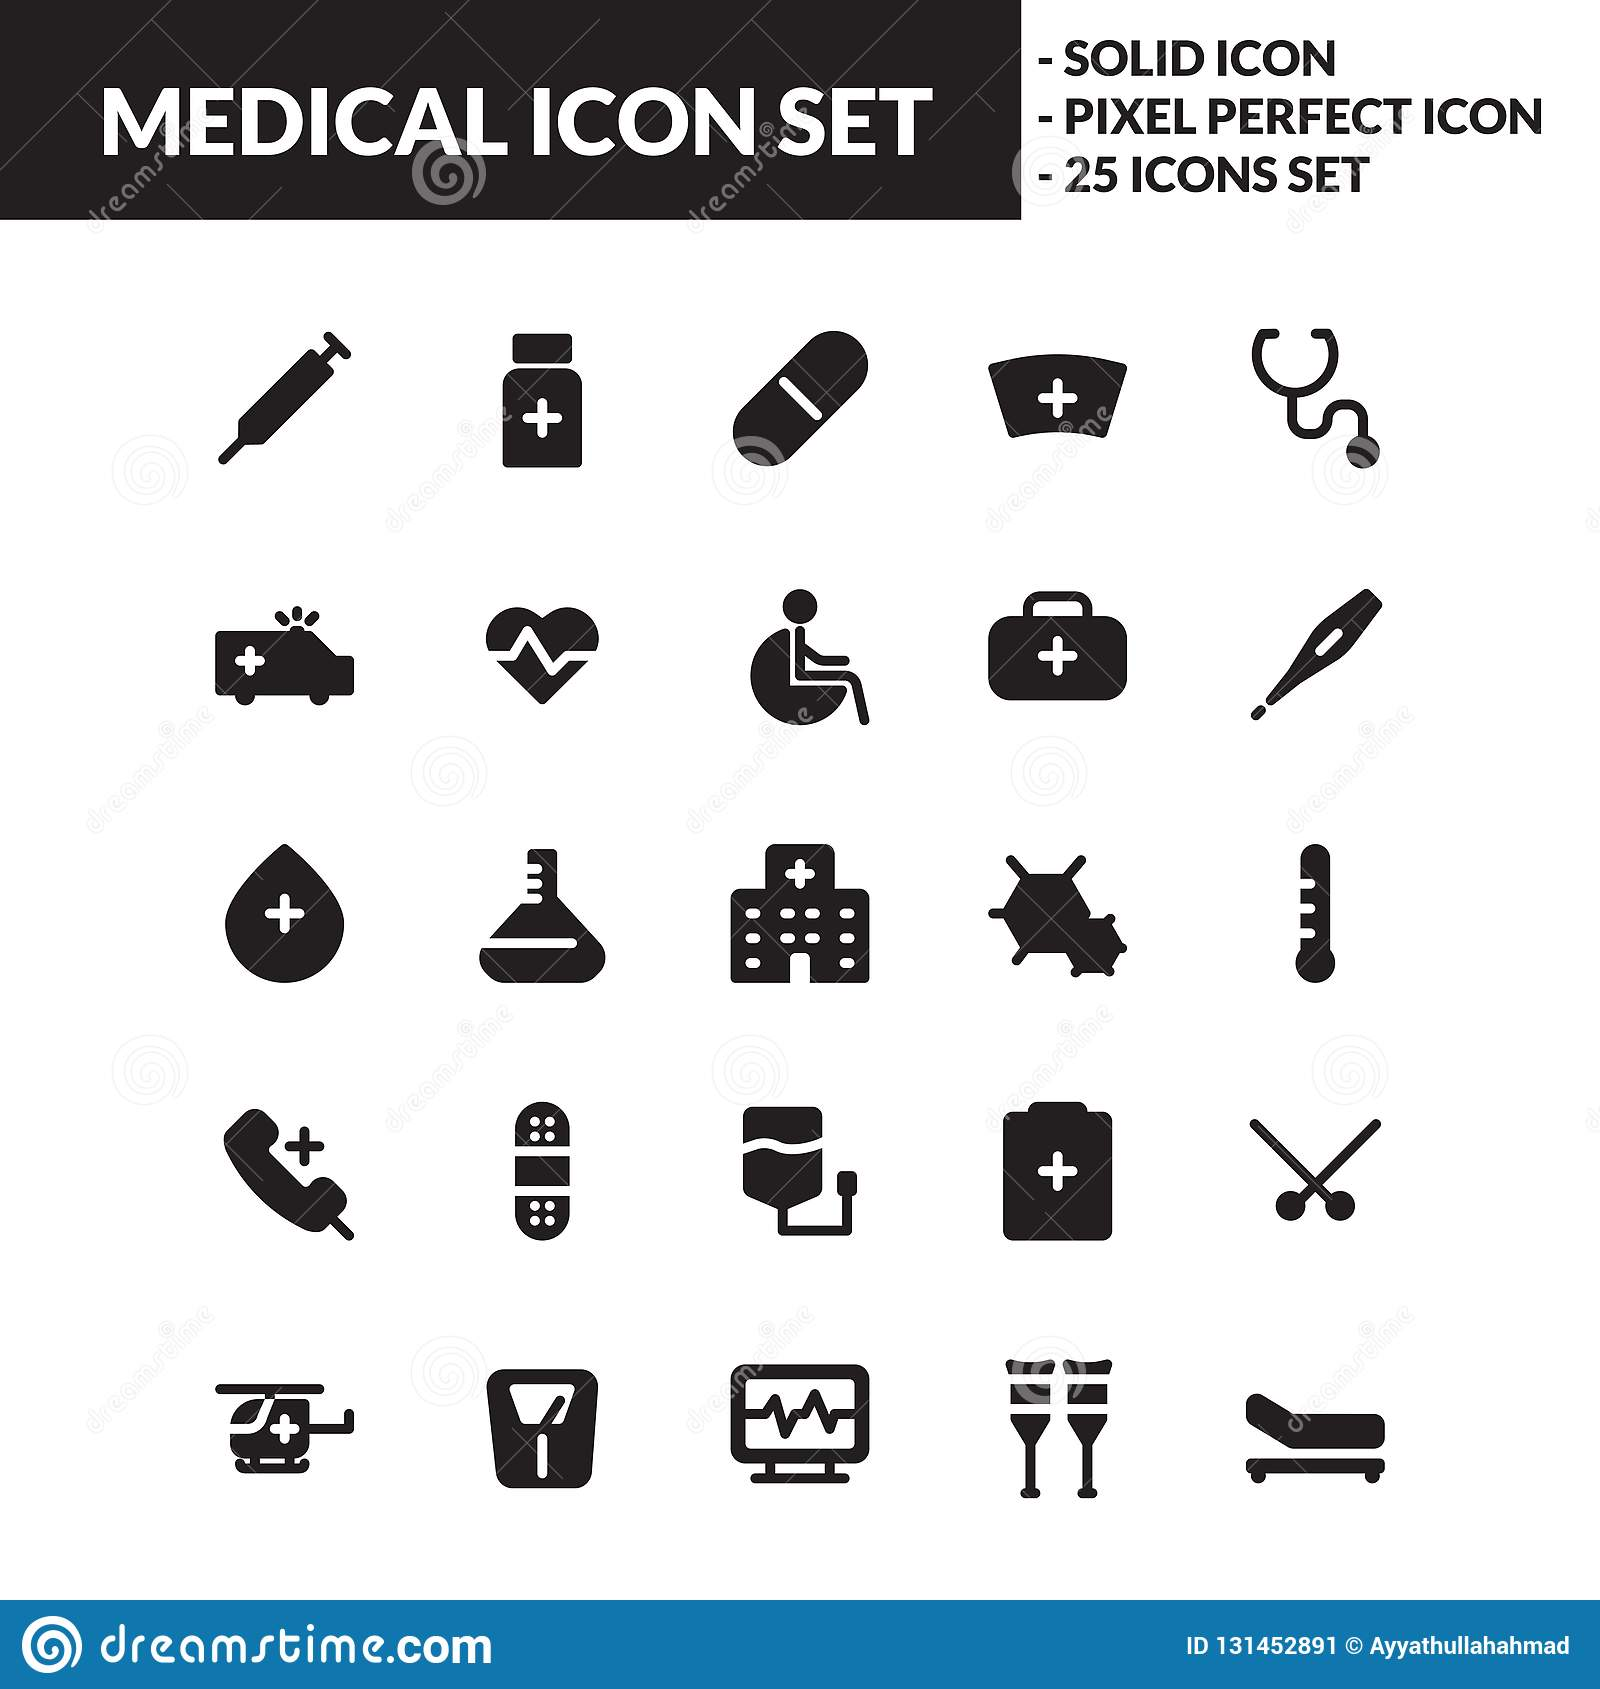 Medical solid icon set